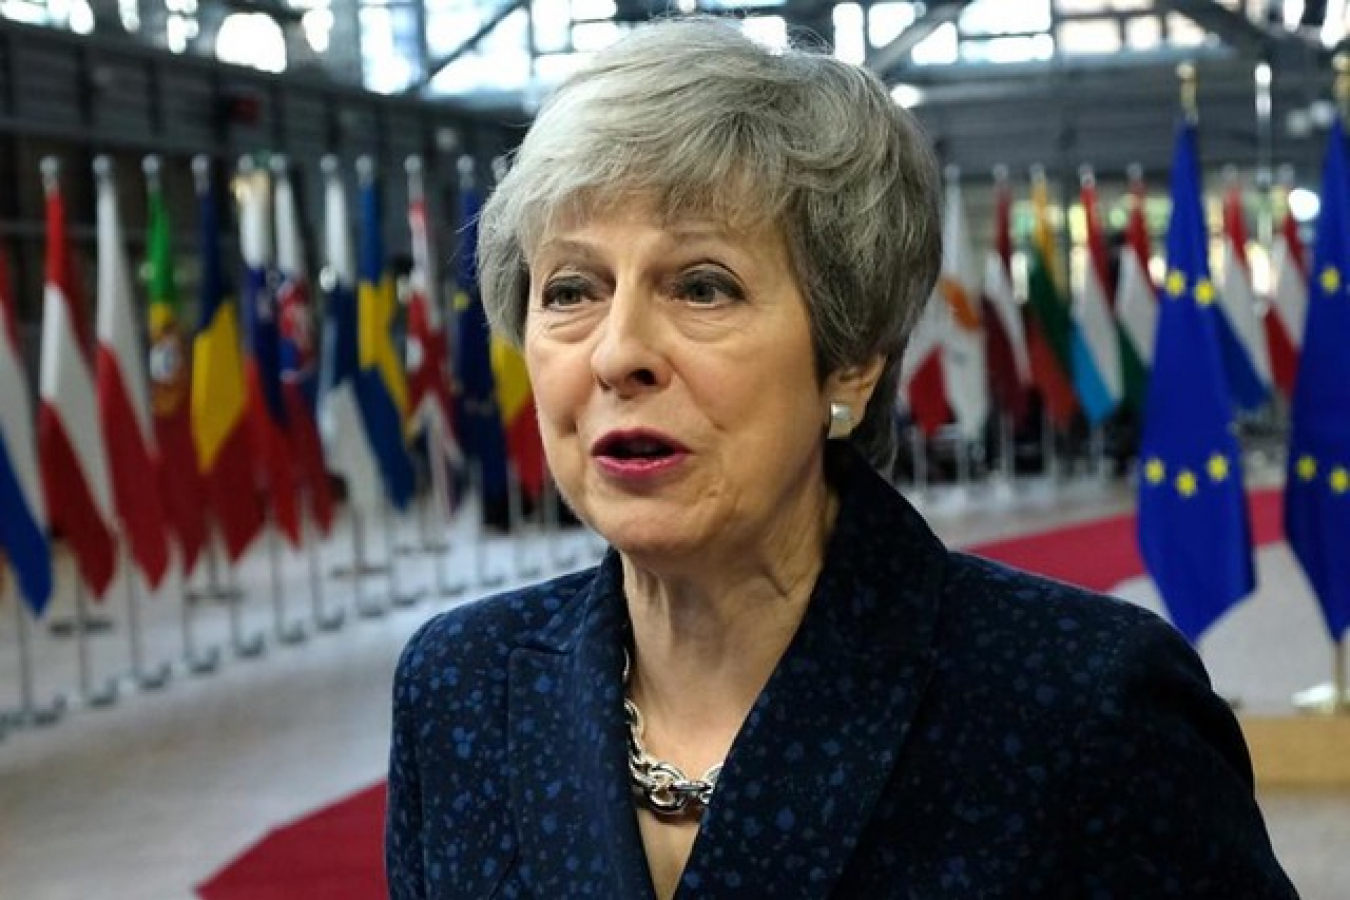 Theresa May Brexit deal not agreed by UK Parliament